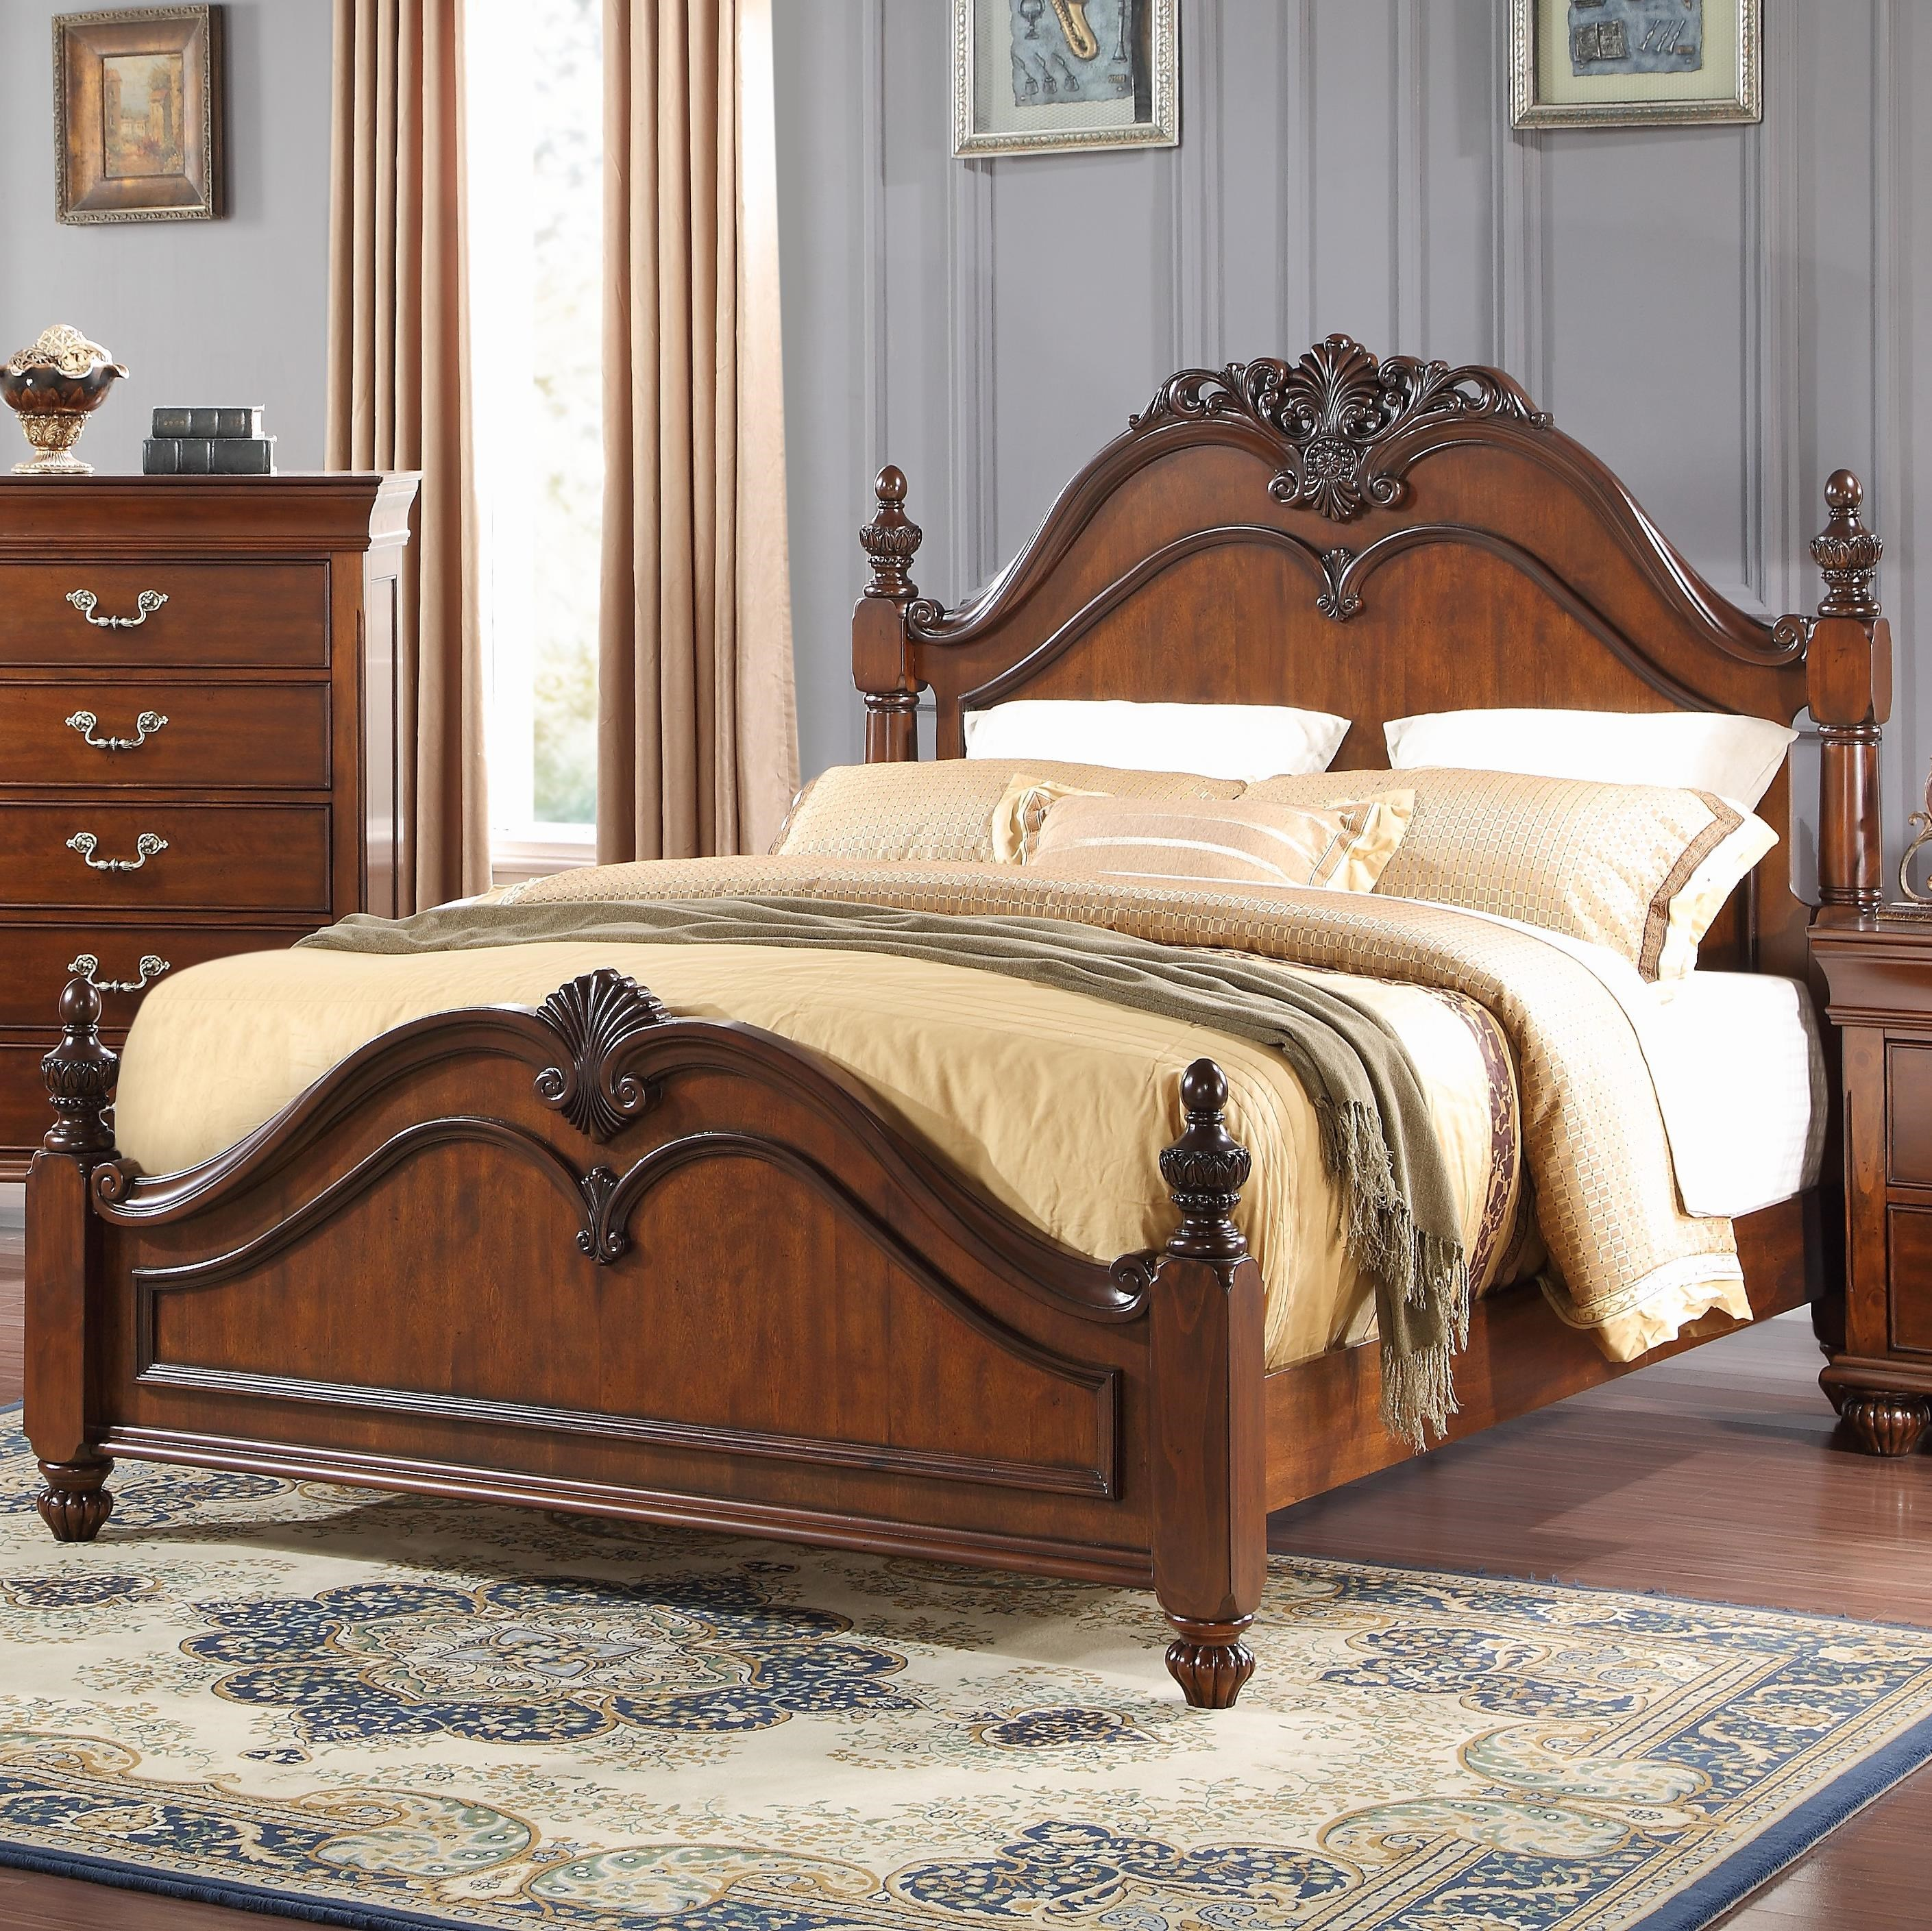 New Classic Burbank King Poster Bed With Carved Details